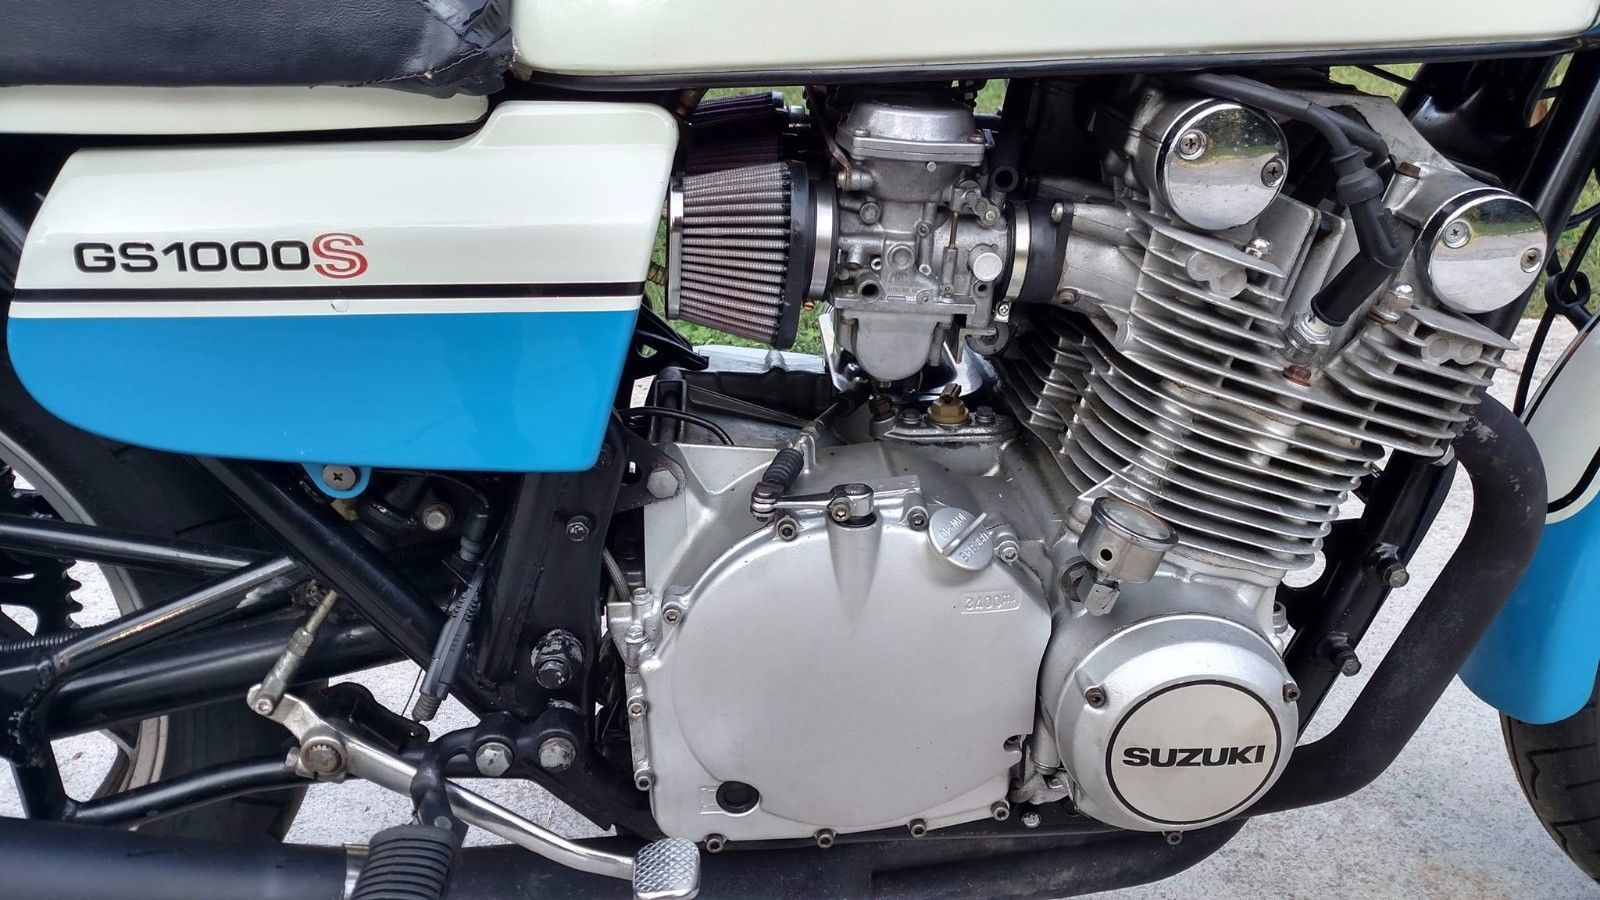 Mike Author At Rare Sportbikes For Sale Page 12 Of 134 1983 Bmw R11 Classic Fuse Box Diagram Featured Listing 1980 Suzuki Gs1000s Wes Cooley